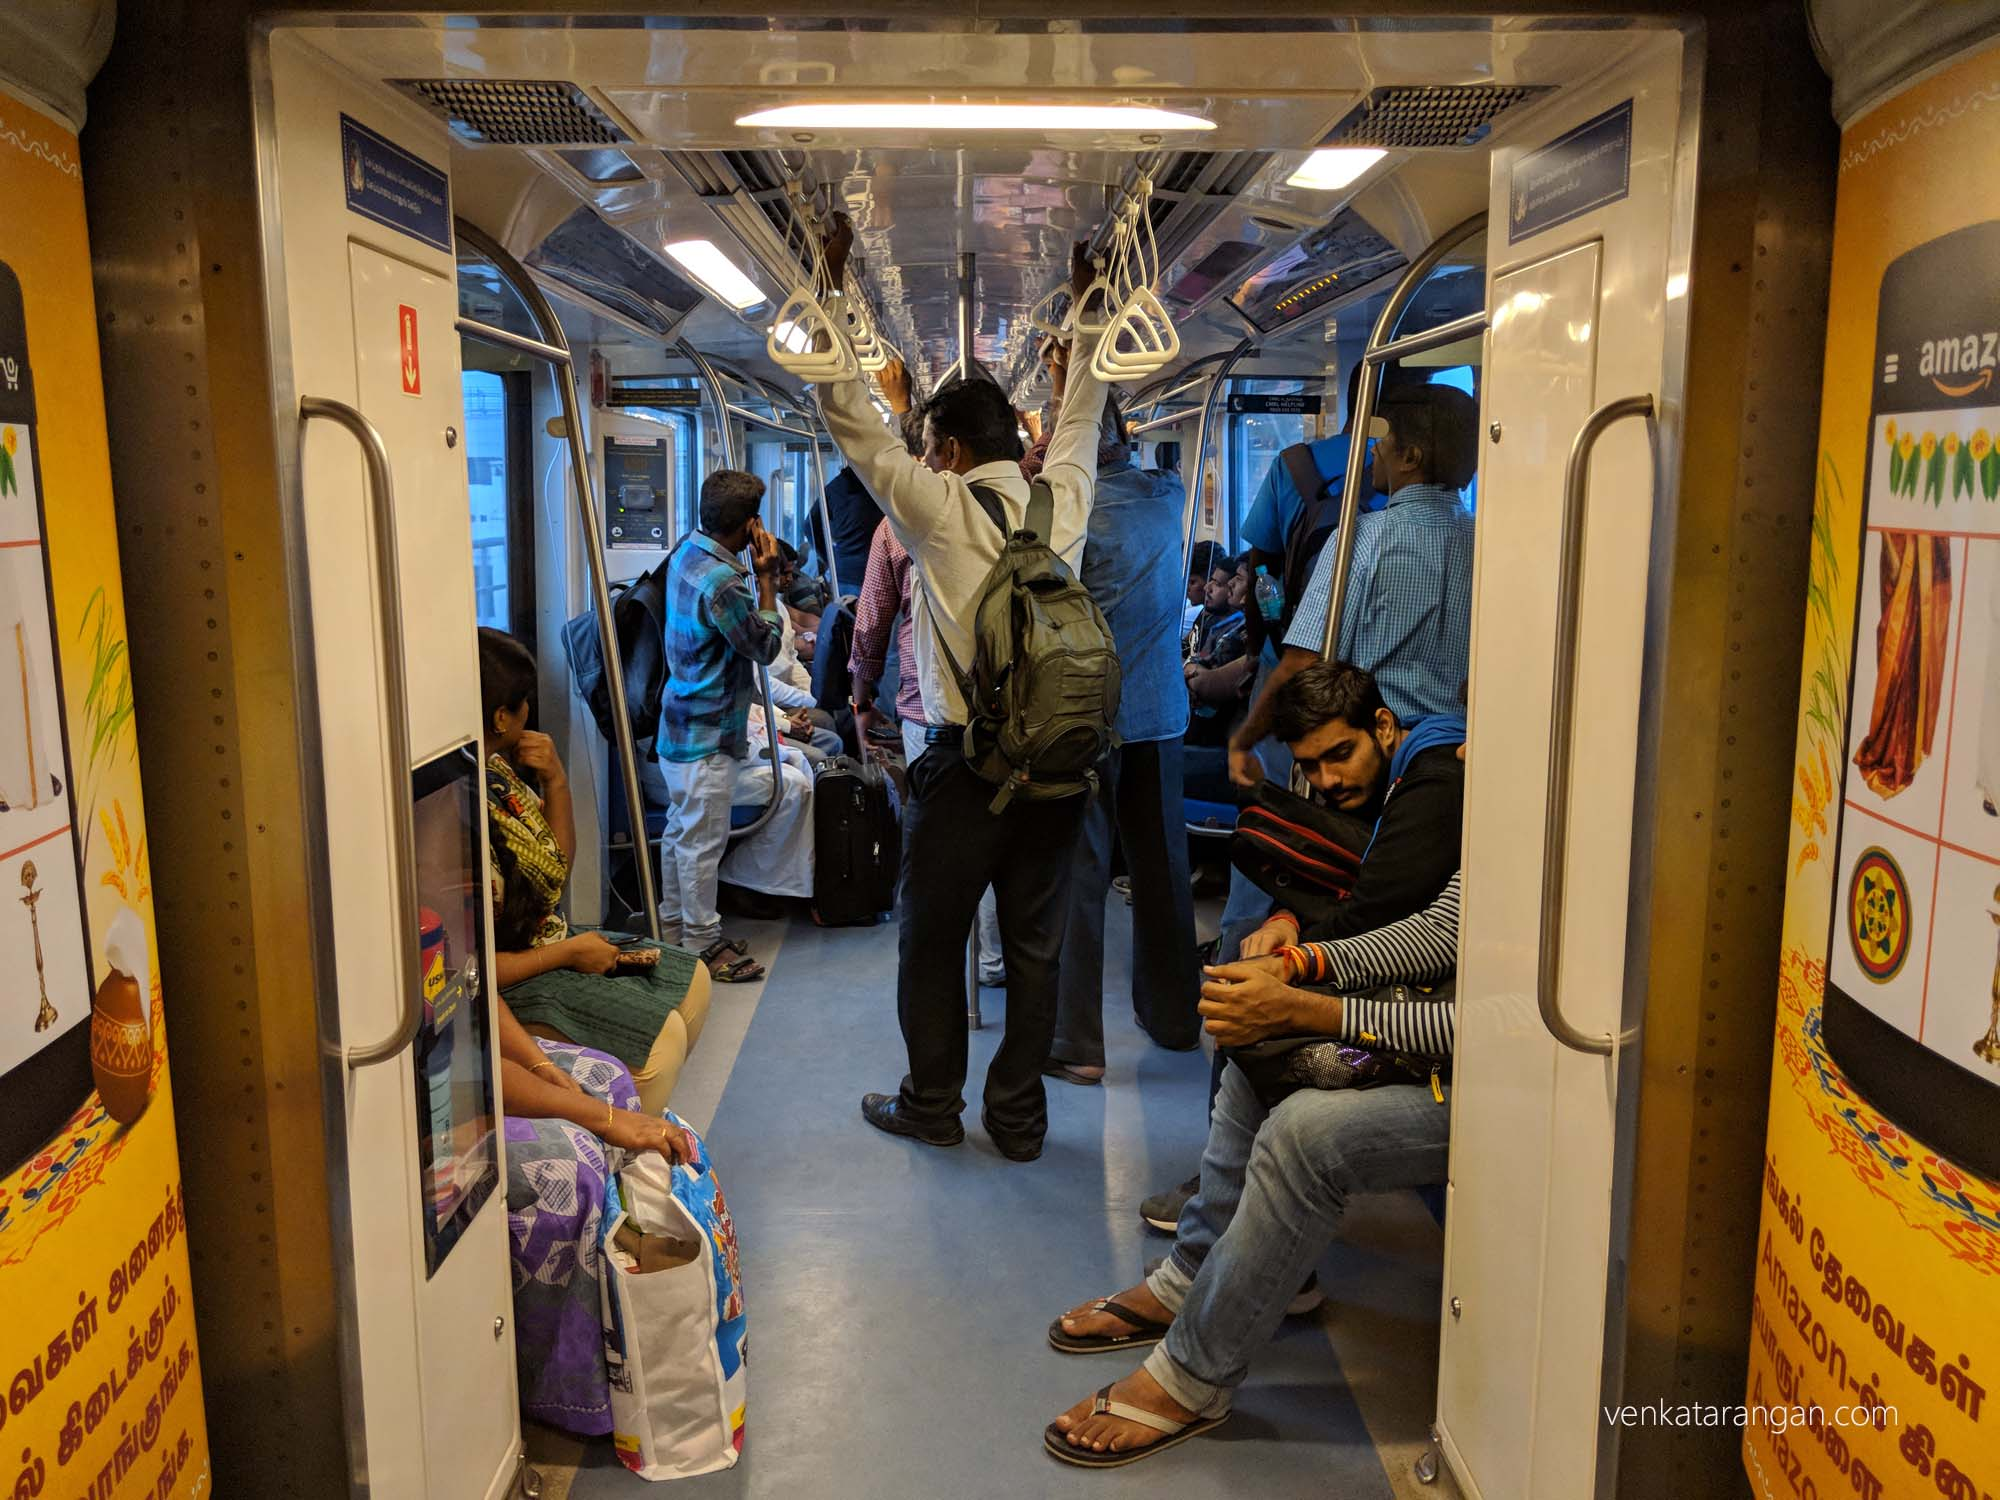 Due to the ongoing Bus Strike, there was quite a crowd onboard Metro Train